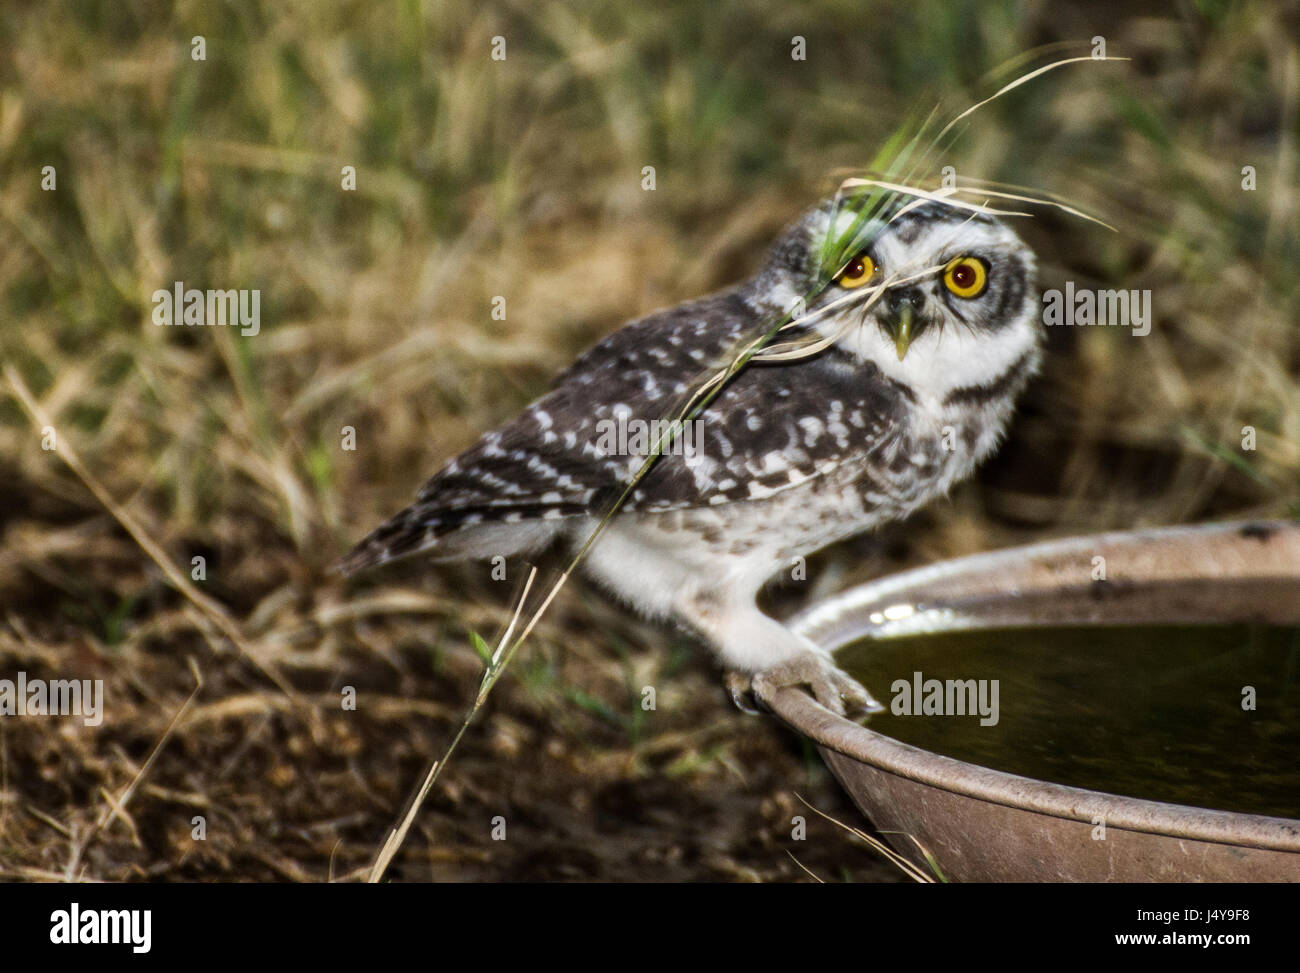 Thirsty Owlets in summer - Stock Image